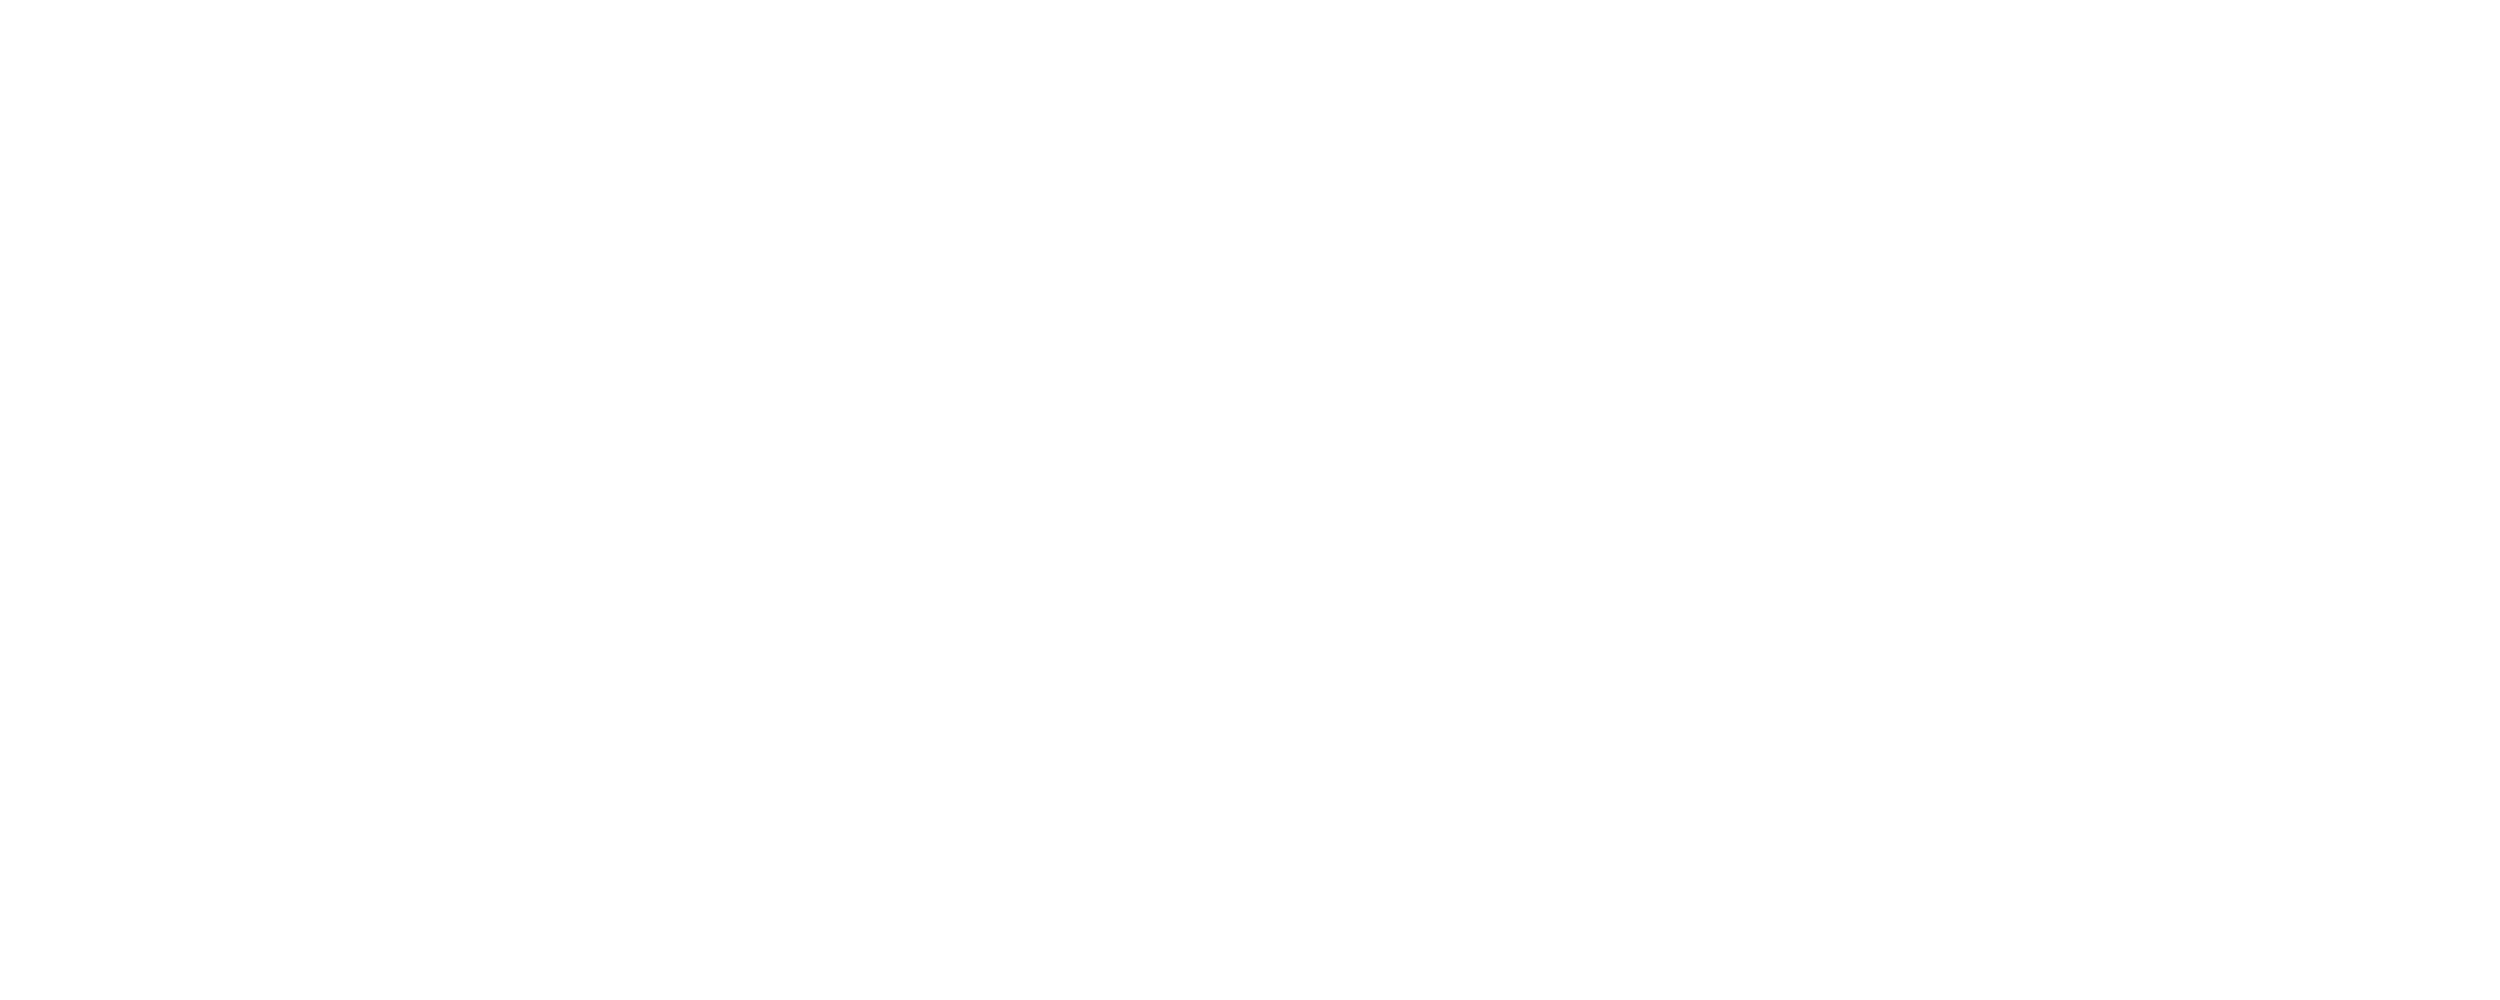 Engagment Session Giveaway.png